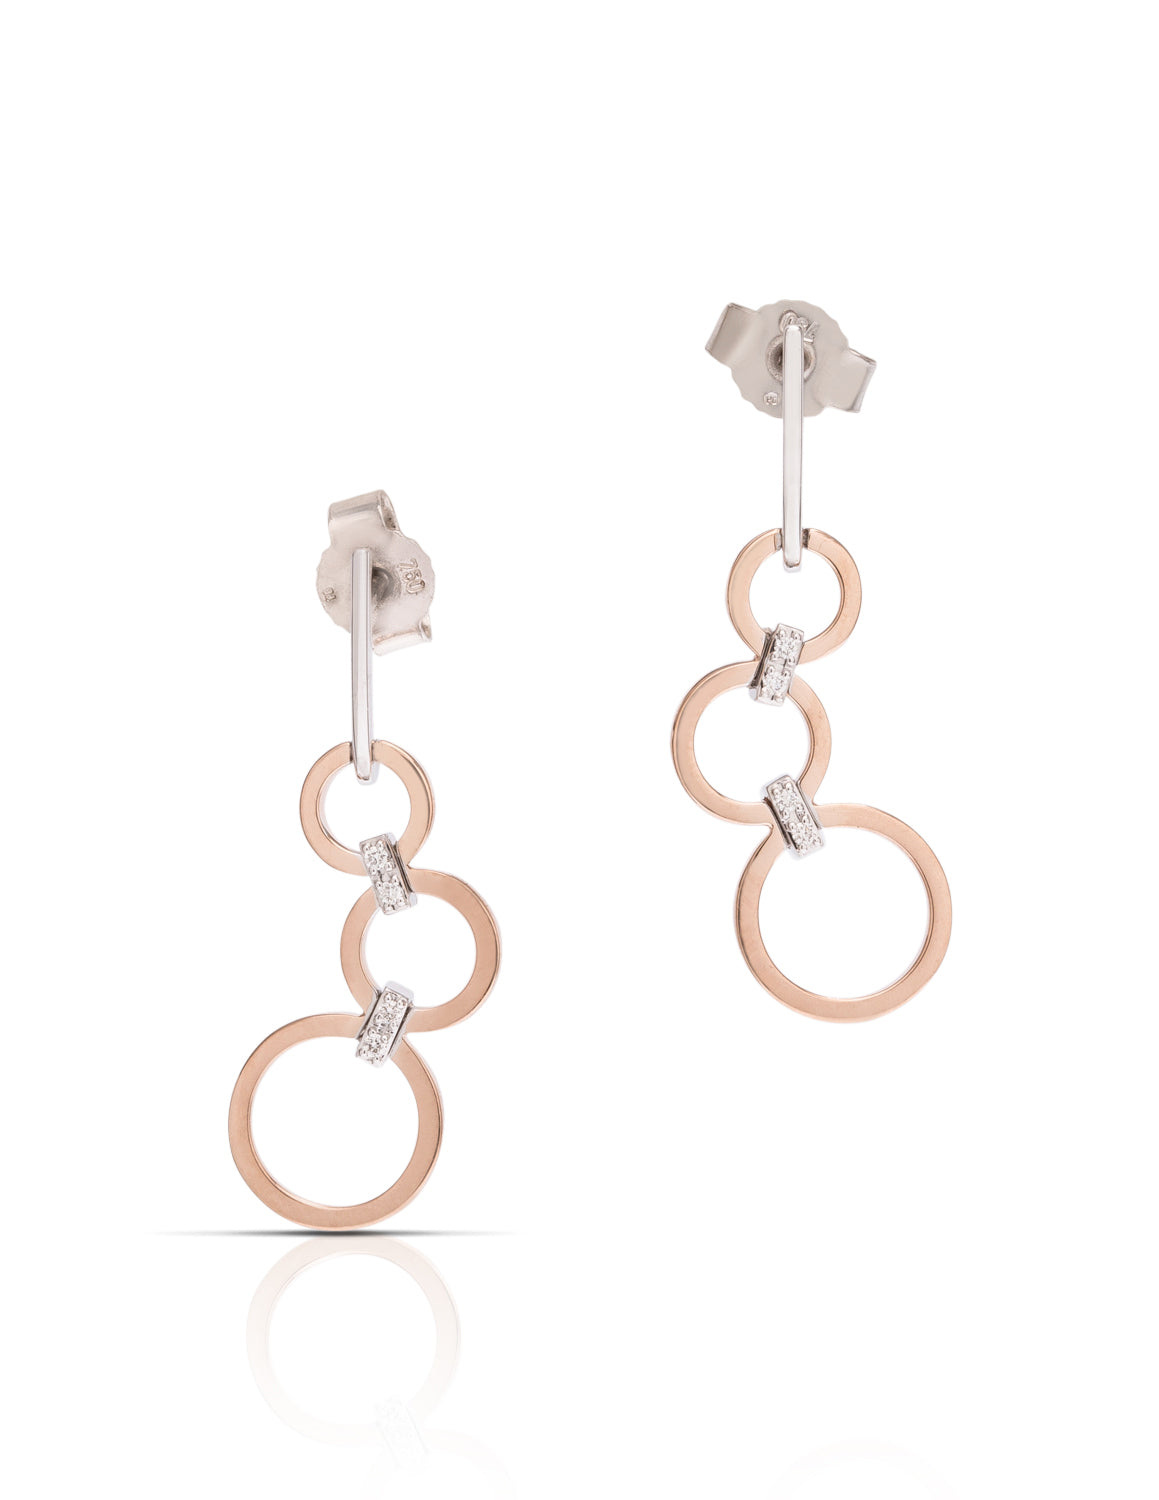 Two-Tone Open Circle Earrings - Charles Koll Jewellers